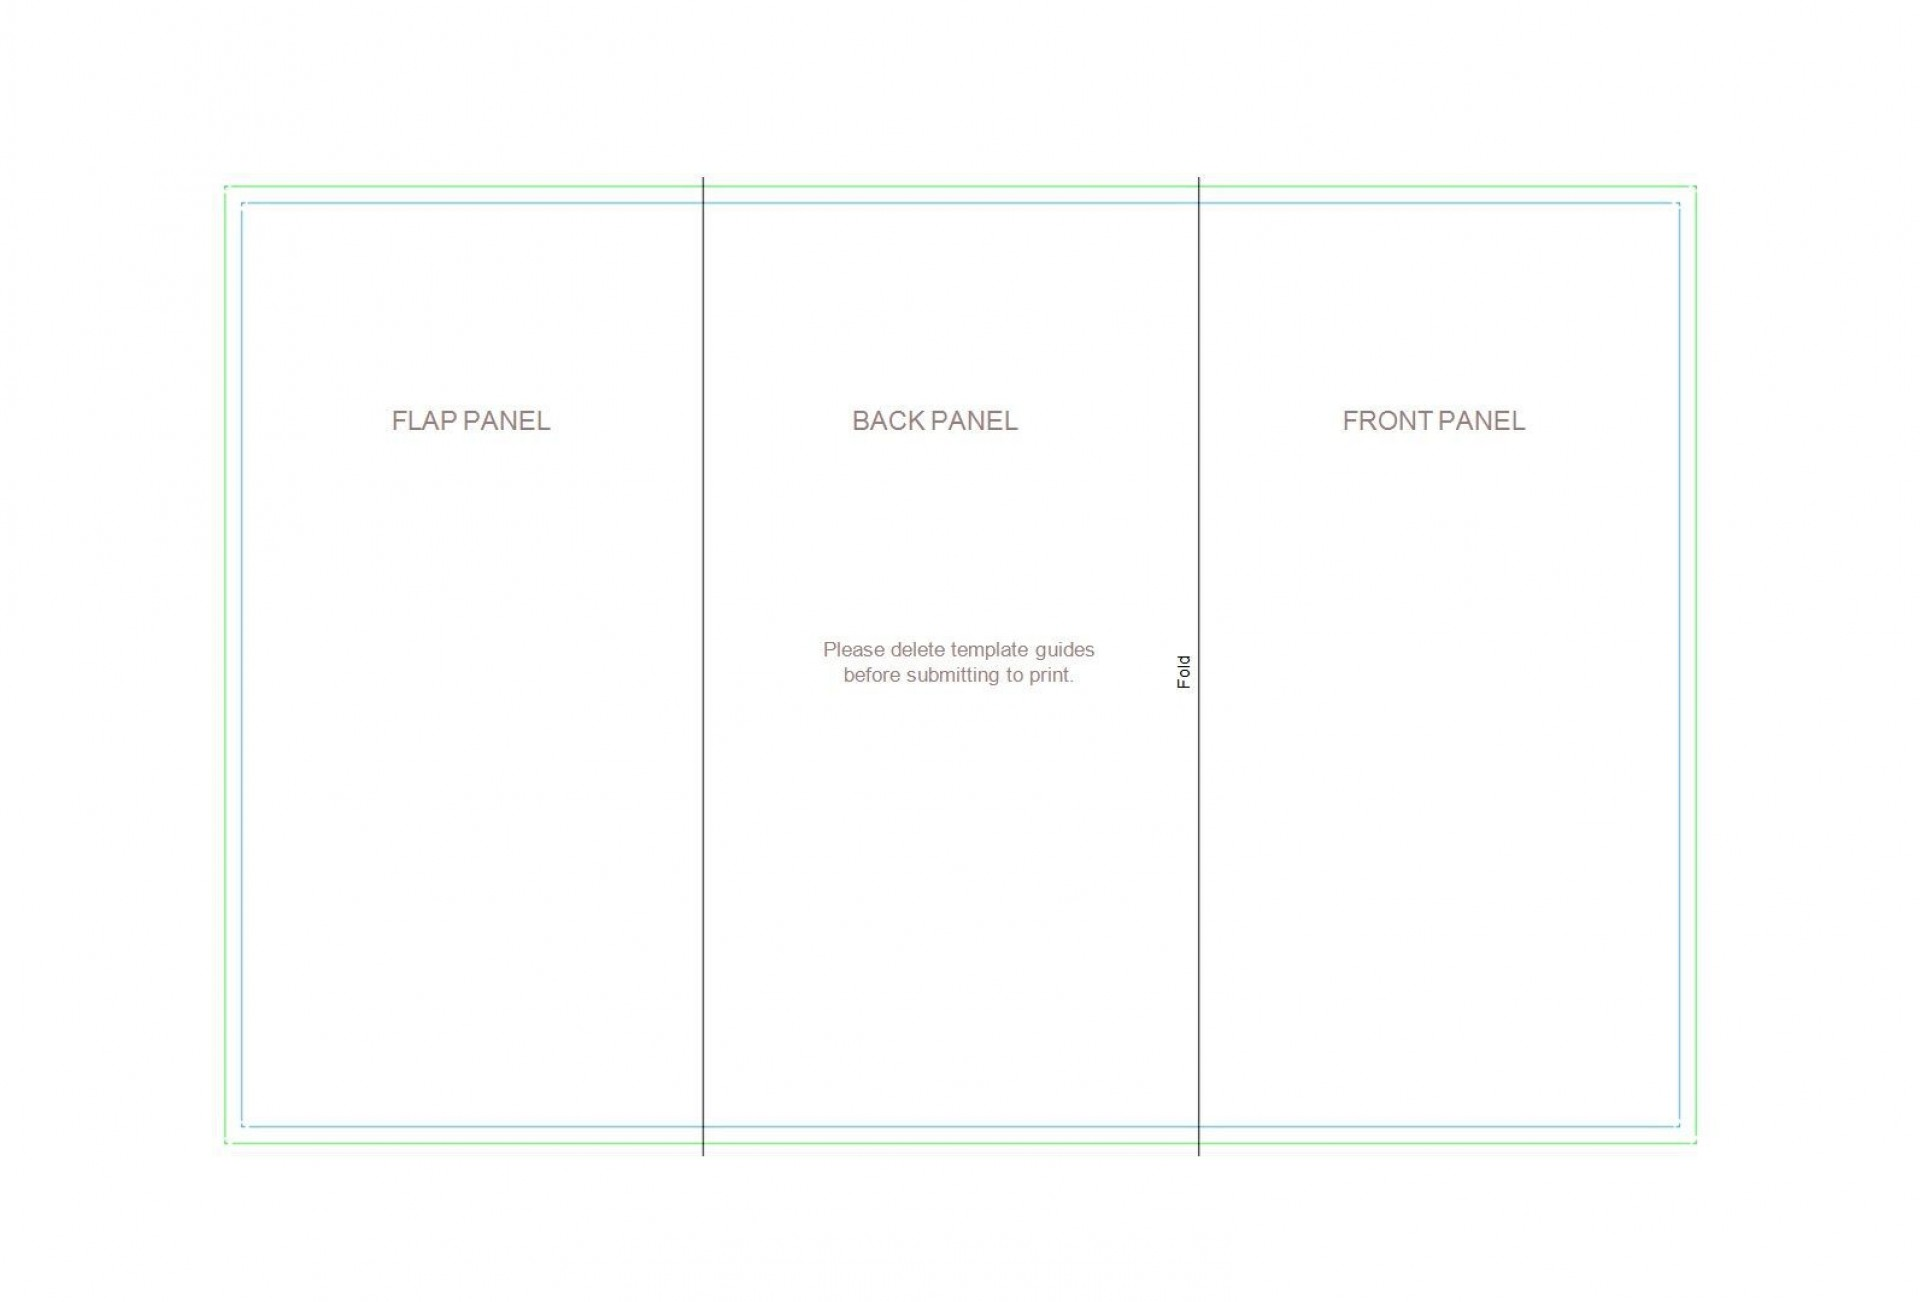 002 Awful Brochure Template For Google Doc Photo  Docs Download 3 Panel Free1920